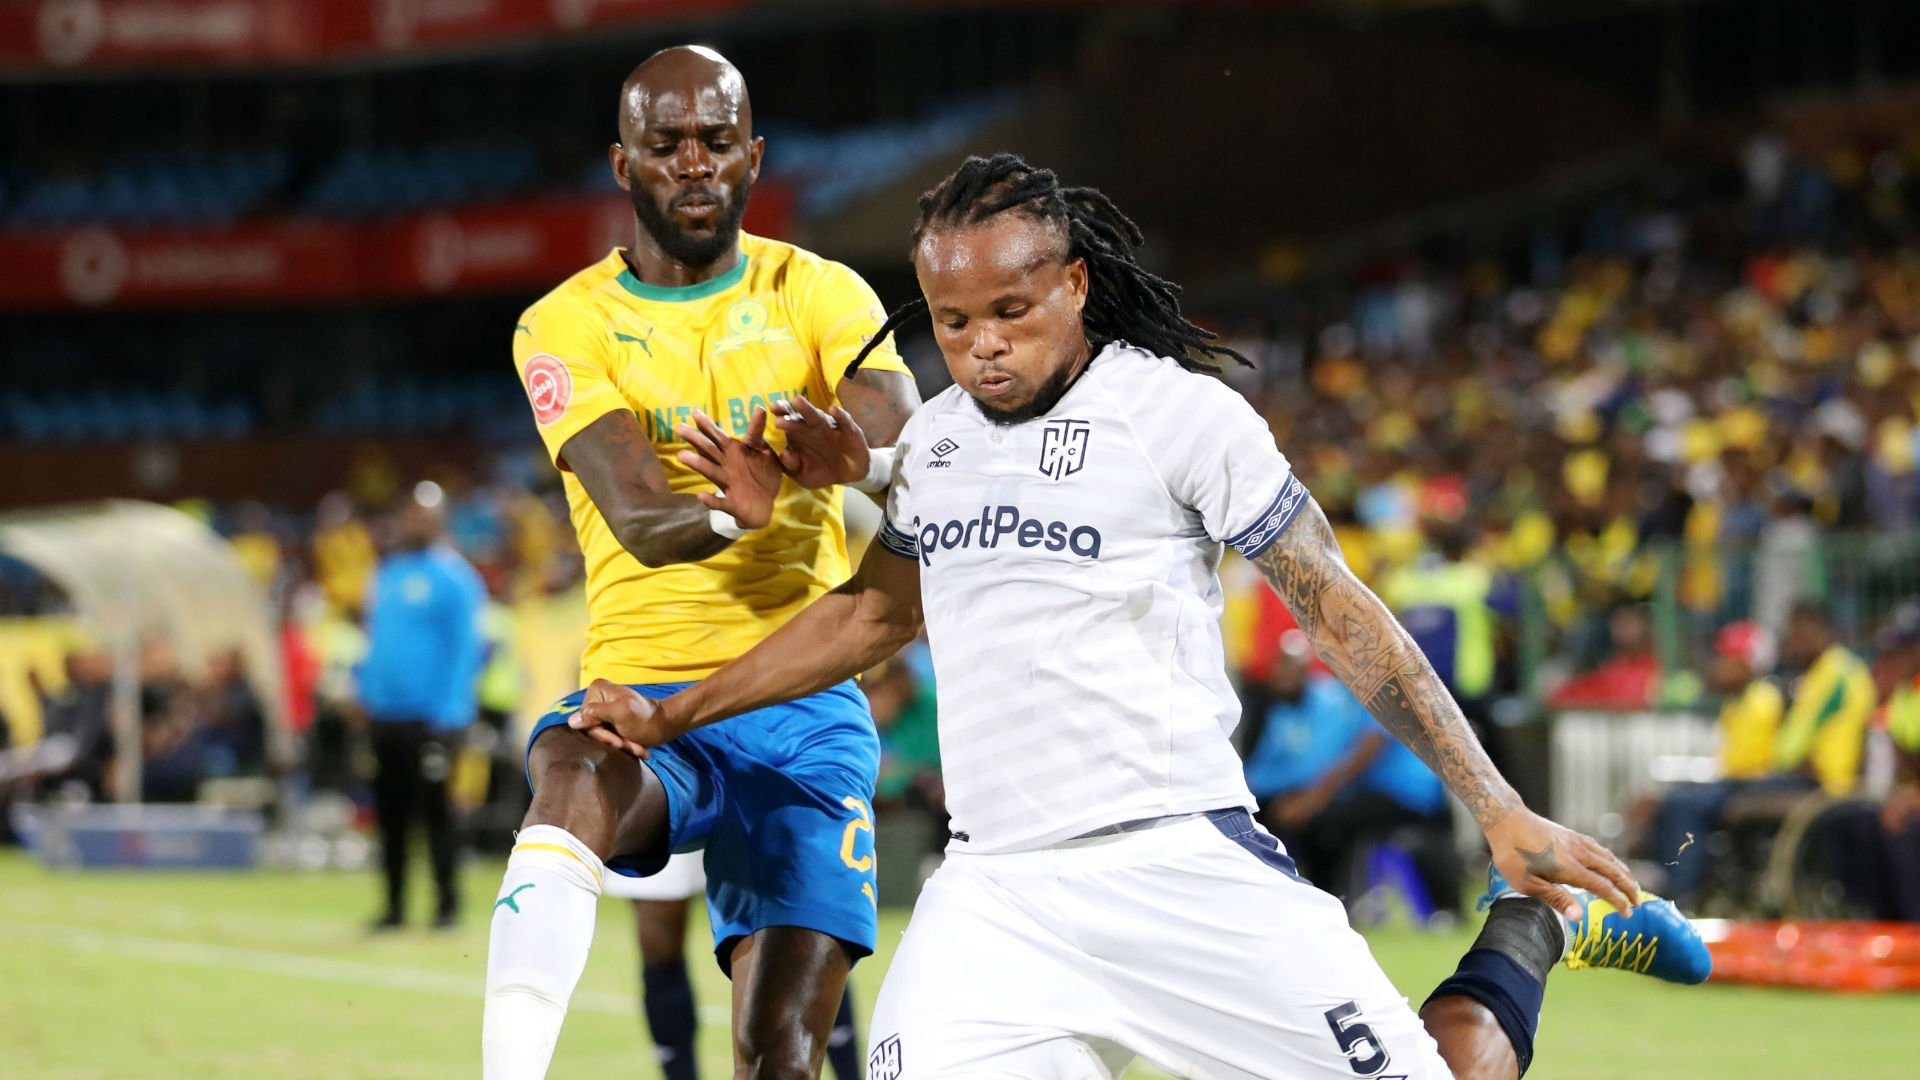 Anthony Laffor, Sundowns & Edmilson Dove, Cape Town City, February 2019